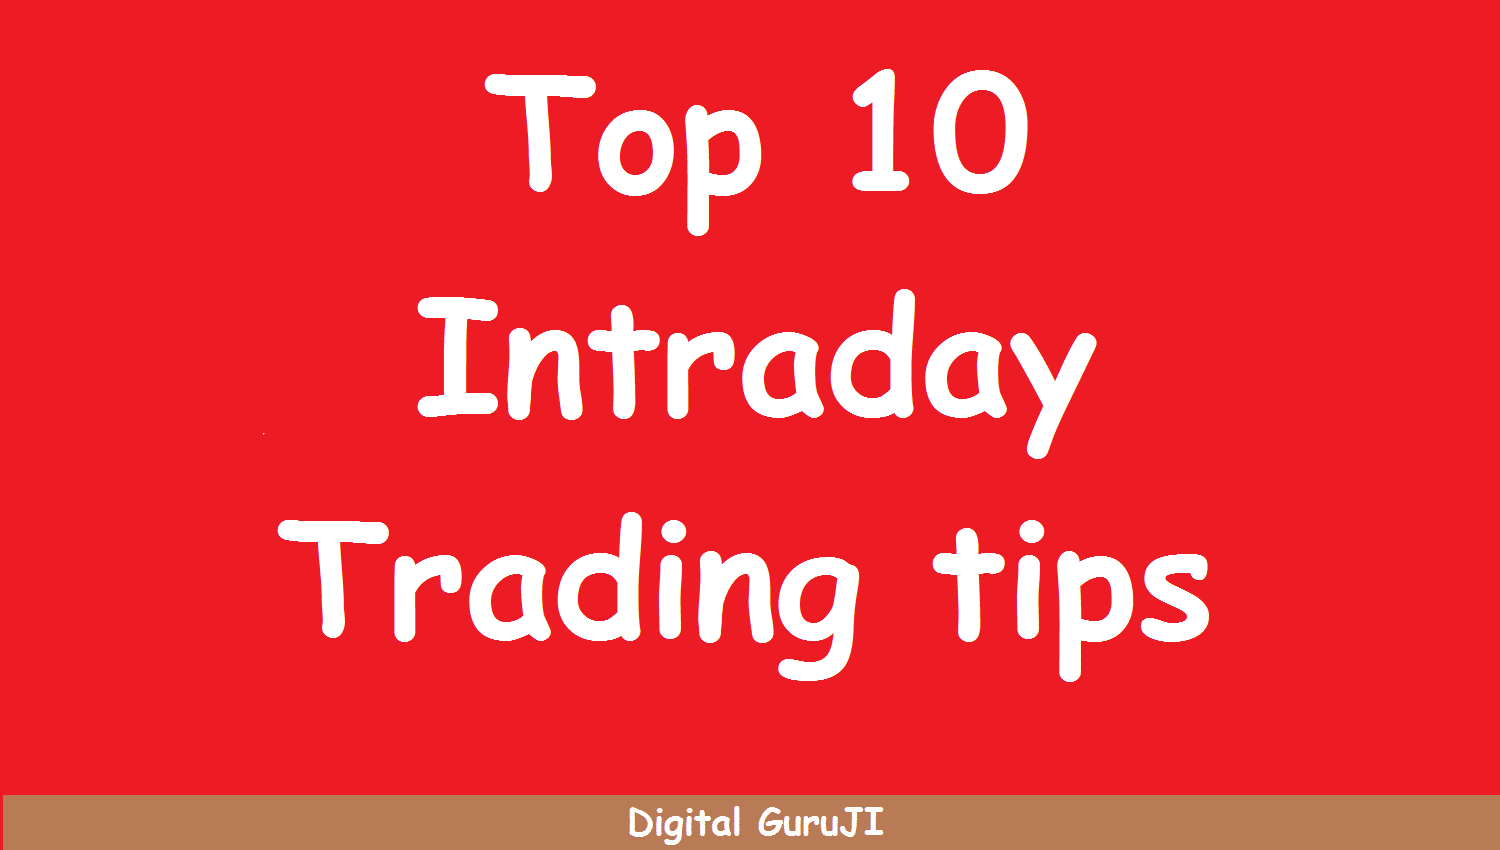 Top 10 Intraday Trading tips